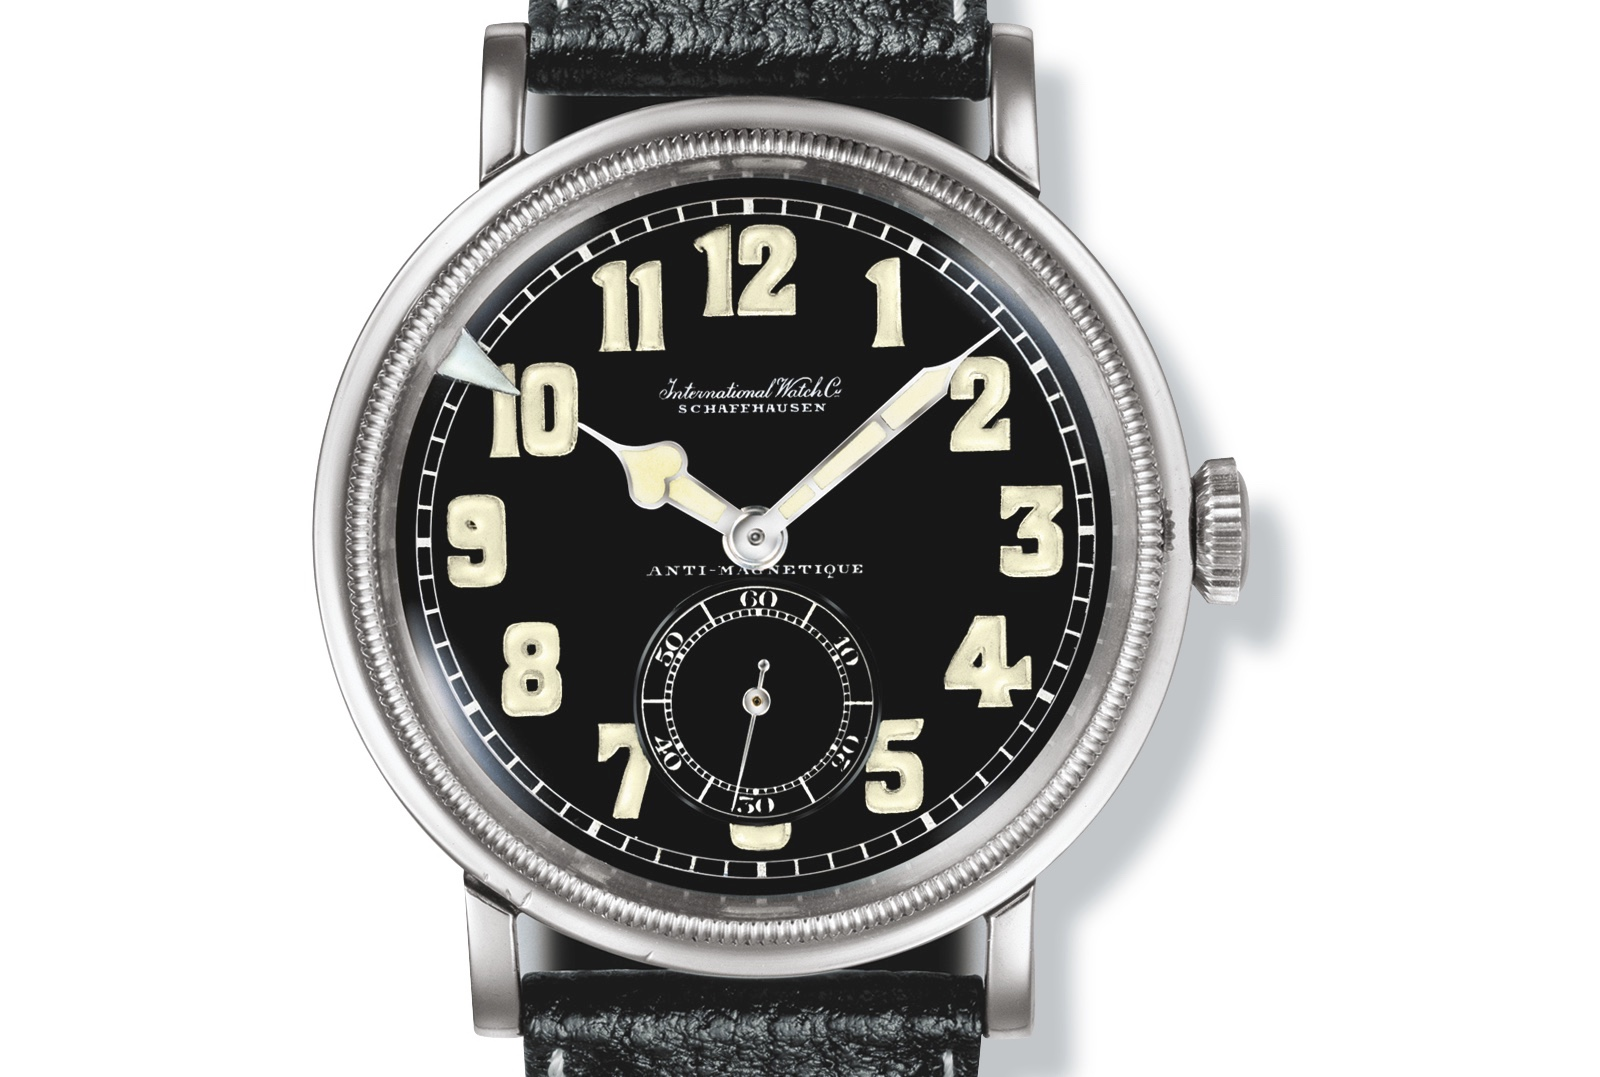 1936 IWC Special Watch for Pilots